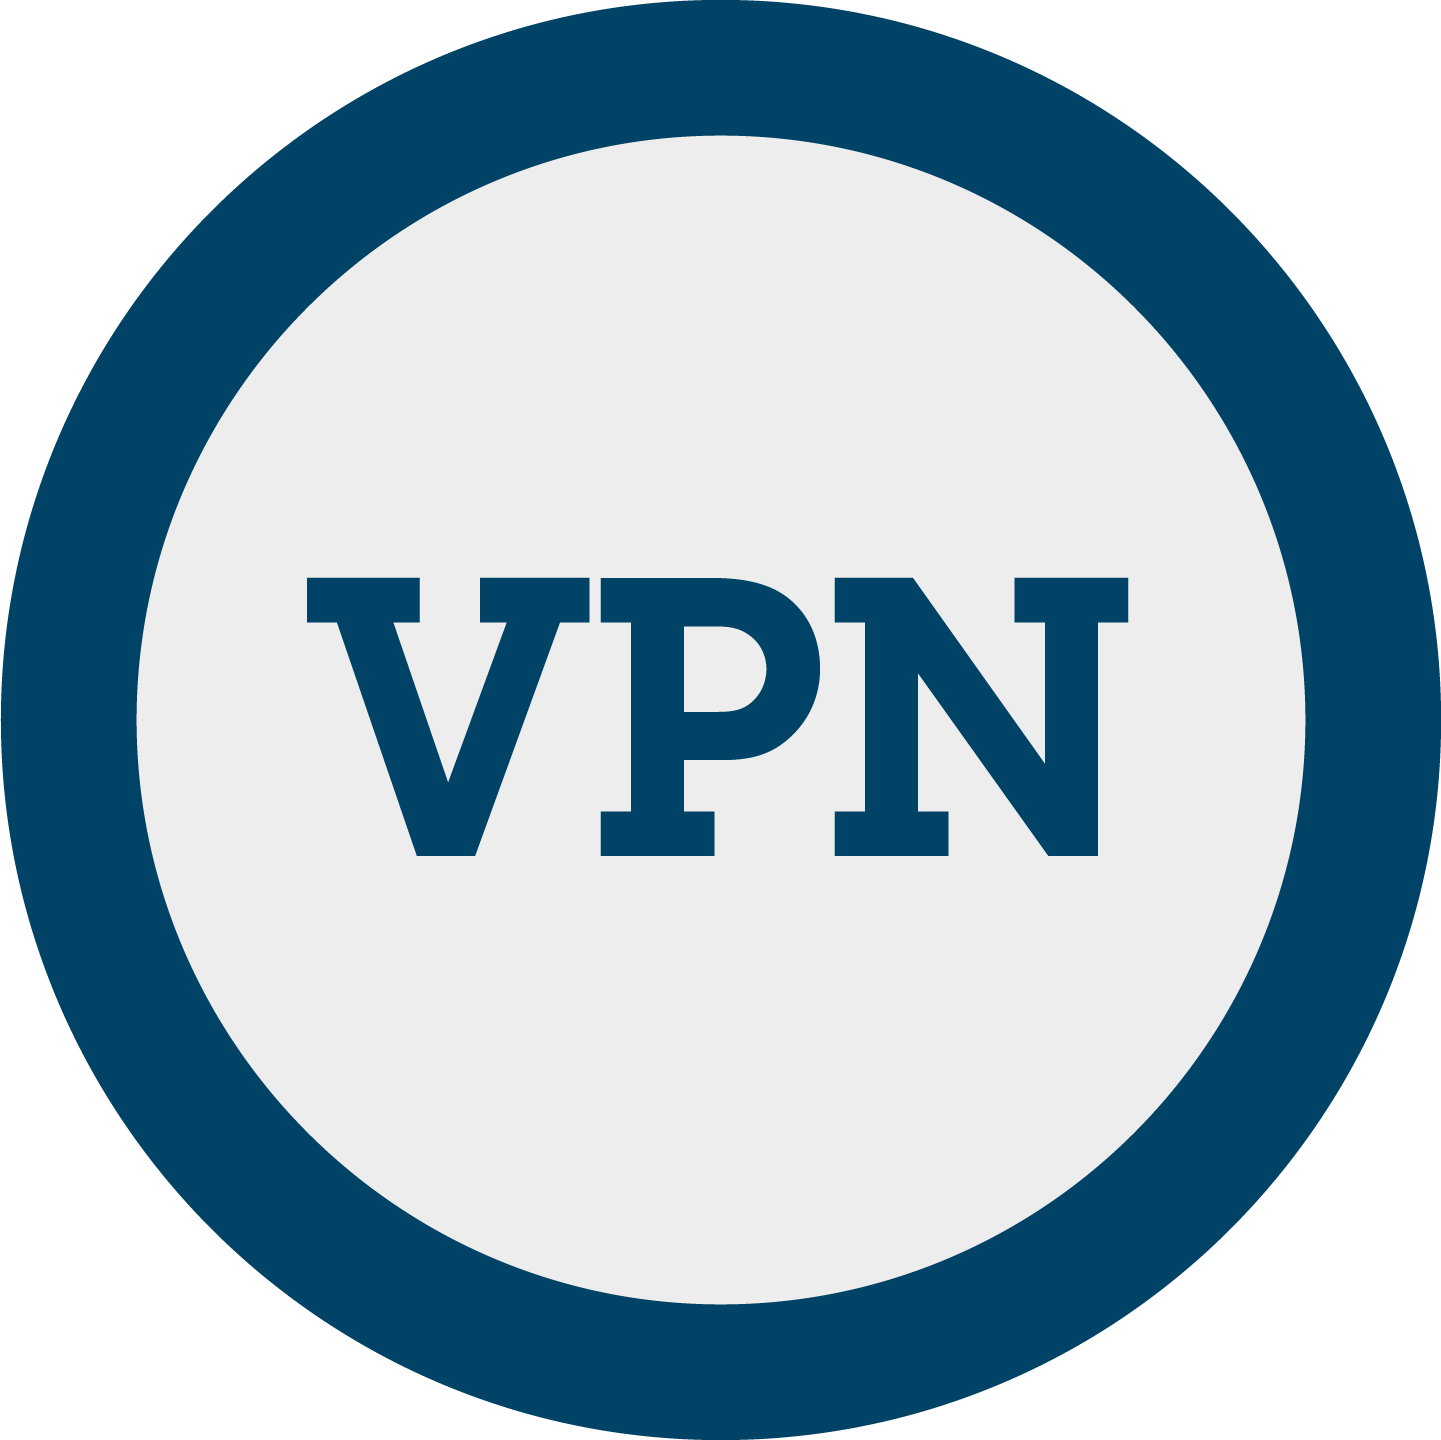 Vpn Icon Png #425451.